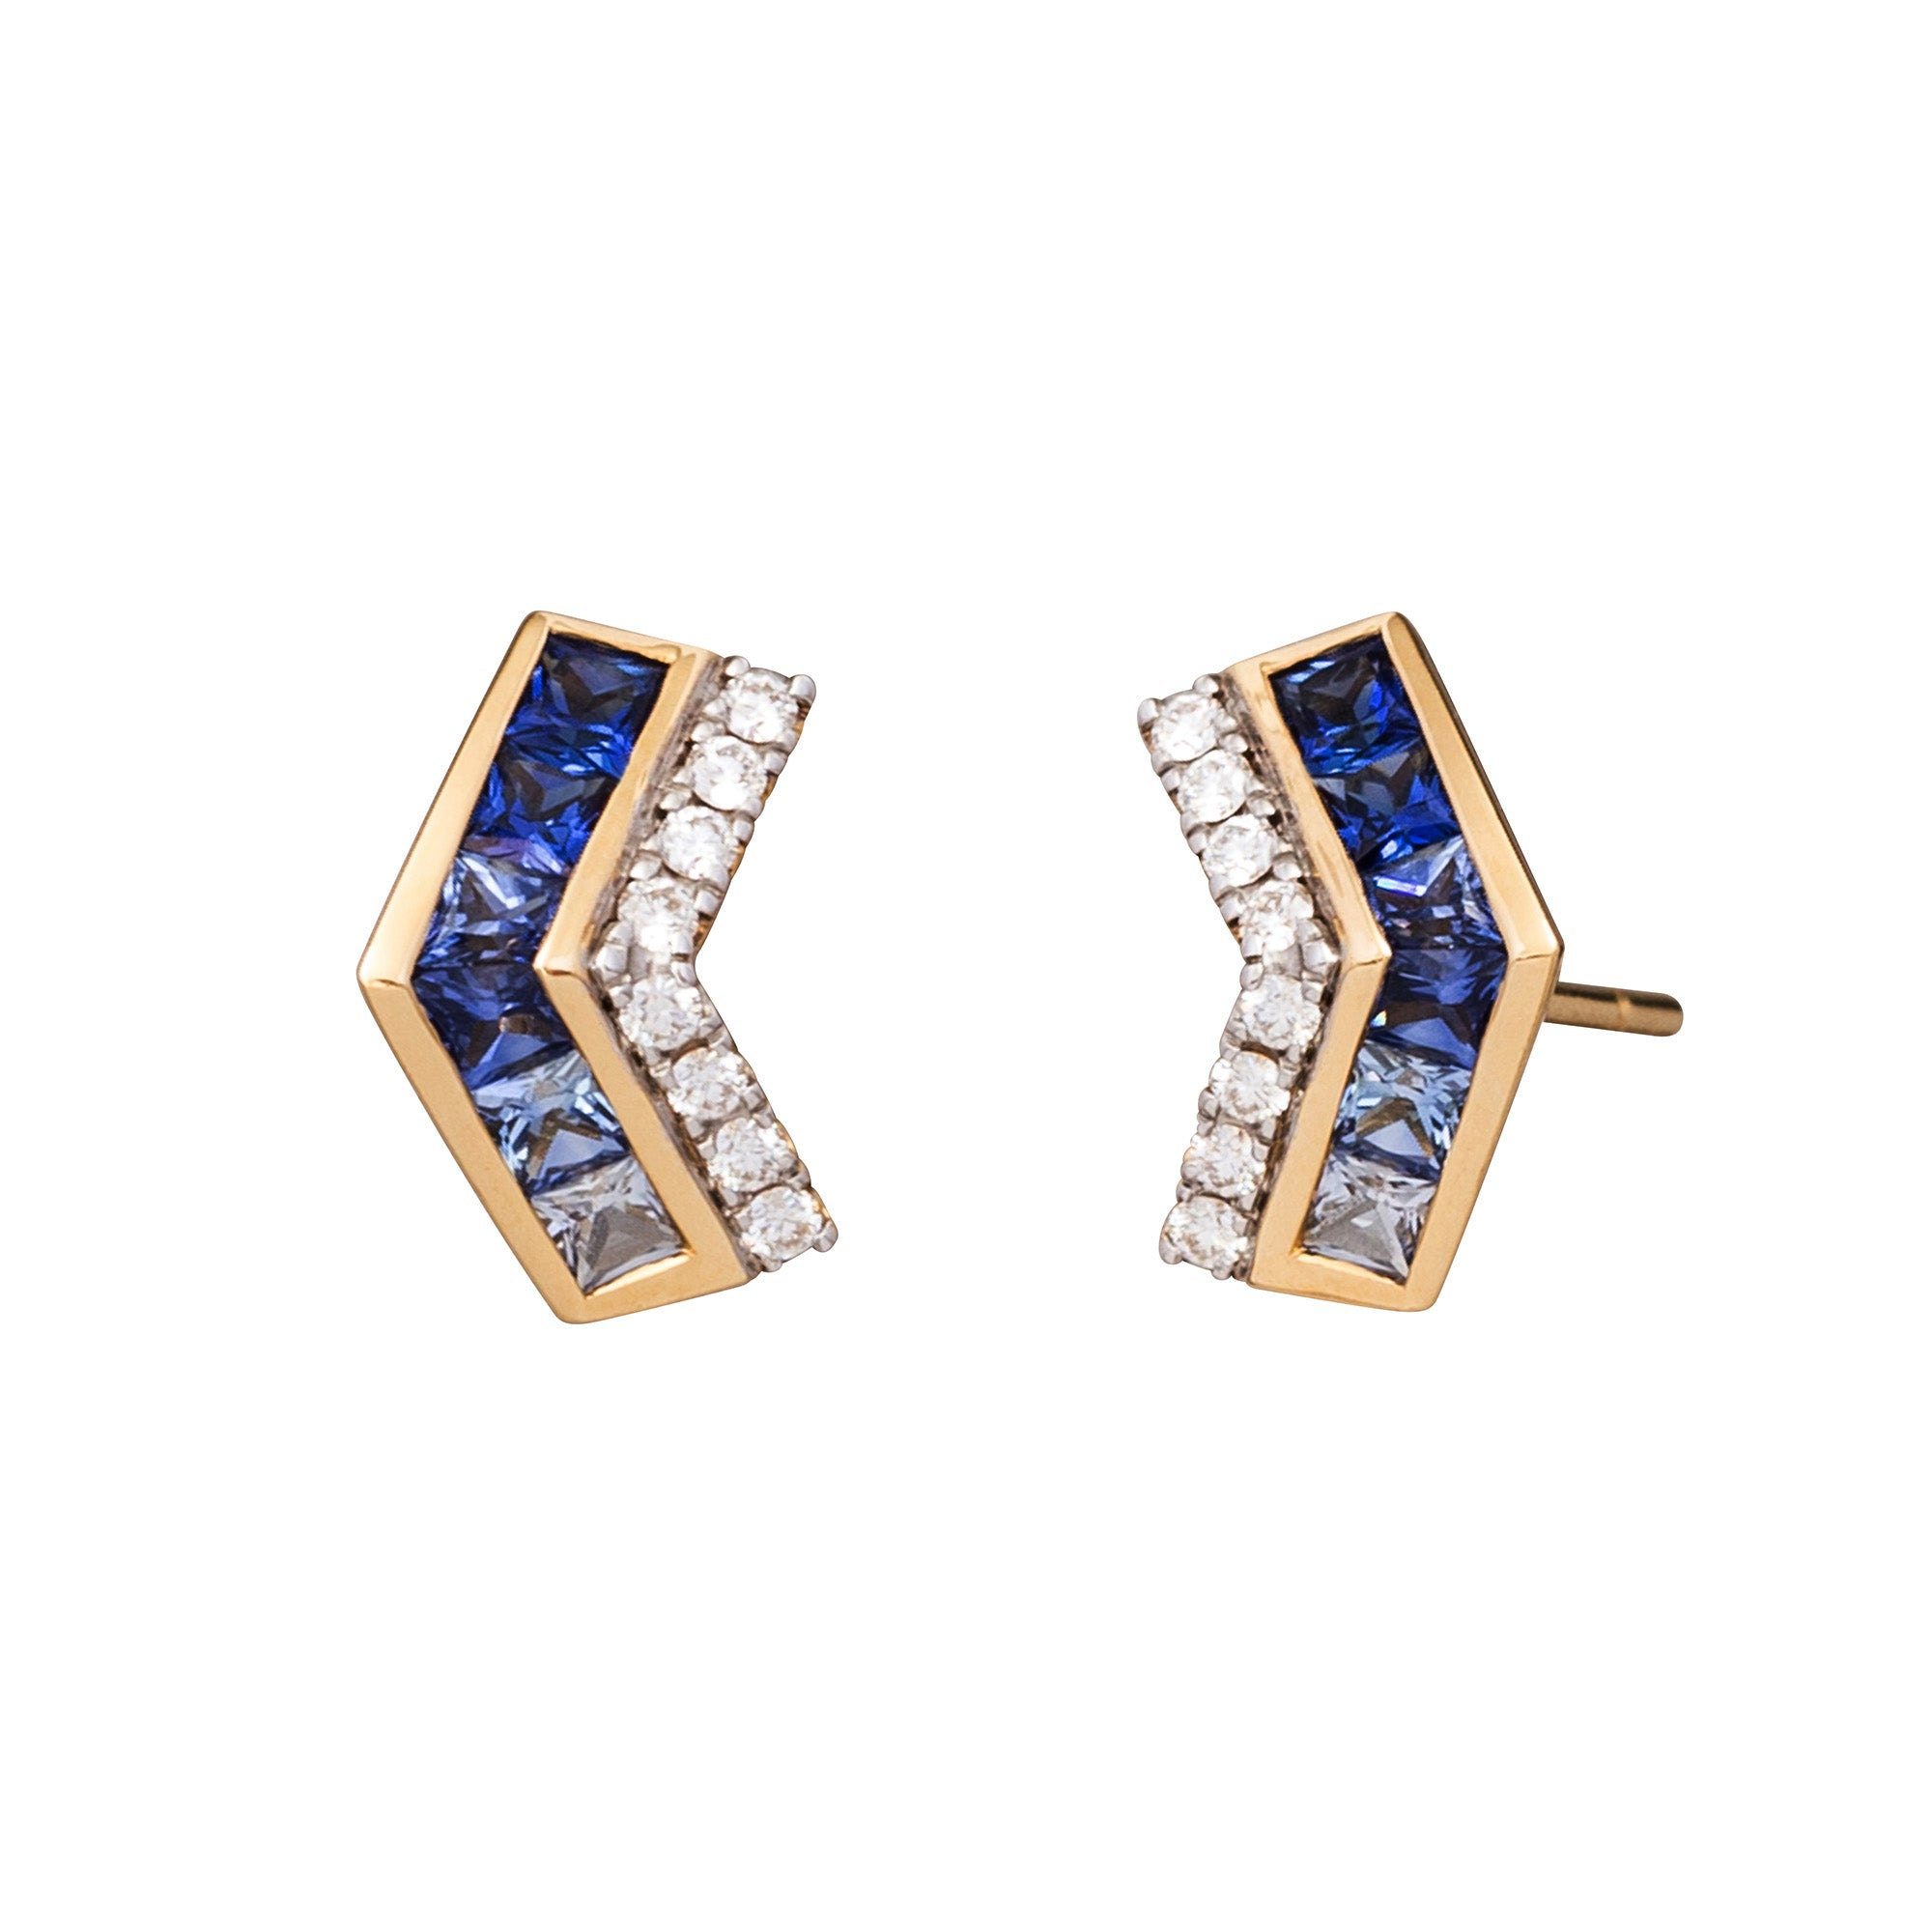 Mini Sapphire & Diamond Origami Stud by Kavant & Sharart for Broken English Jewelry